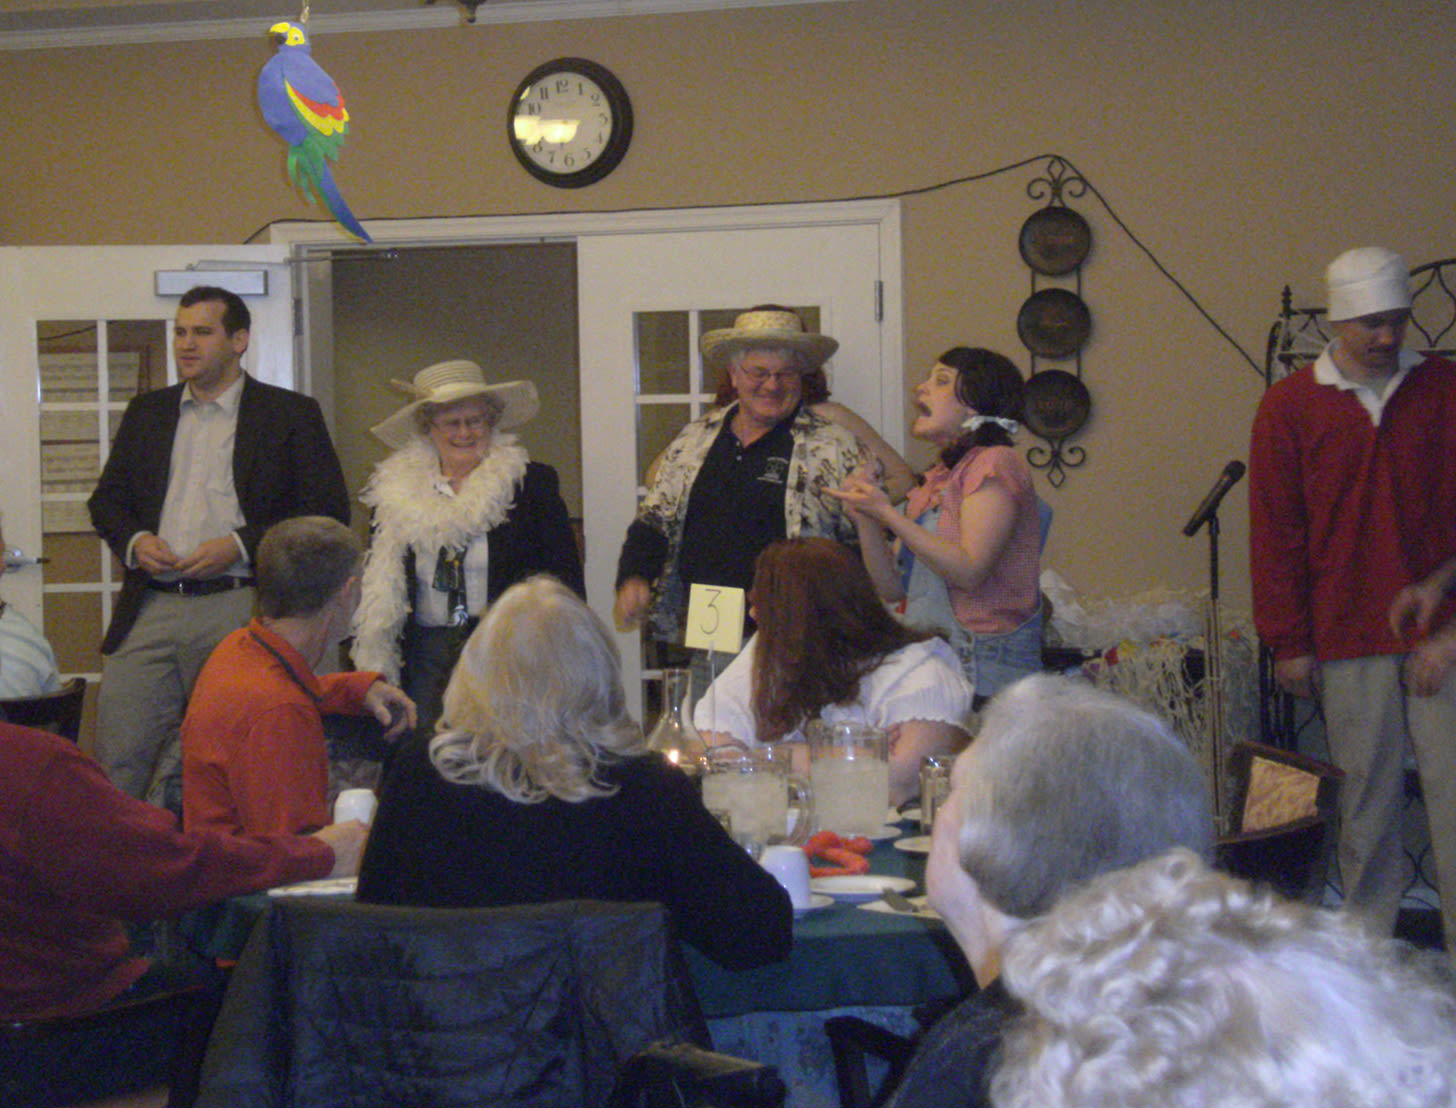 Residents playing a murder mystery game at Heritage Green in Lynchburg, Virginia